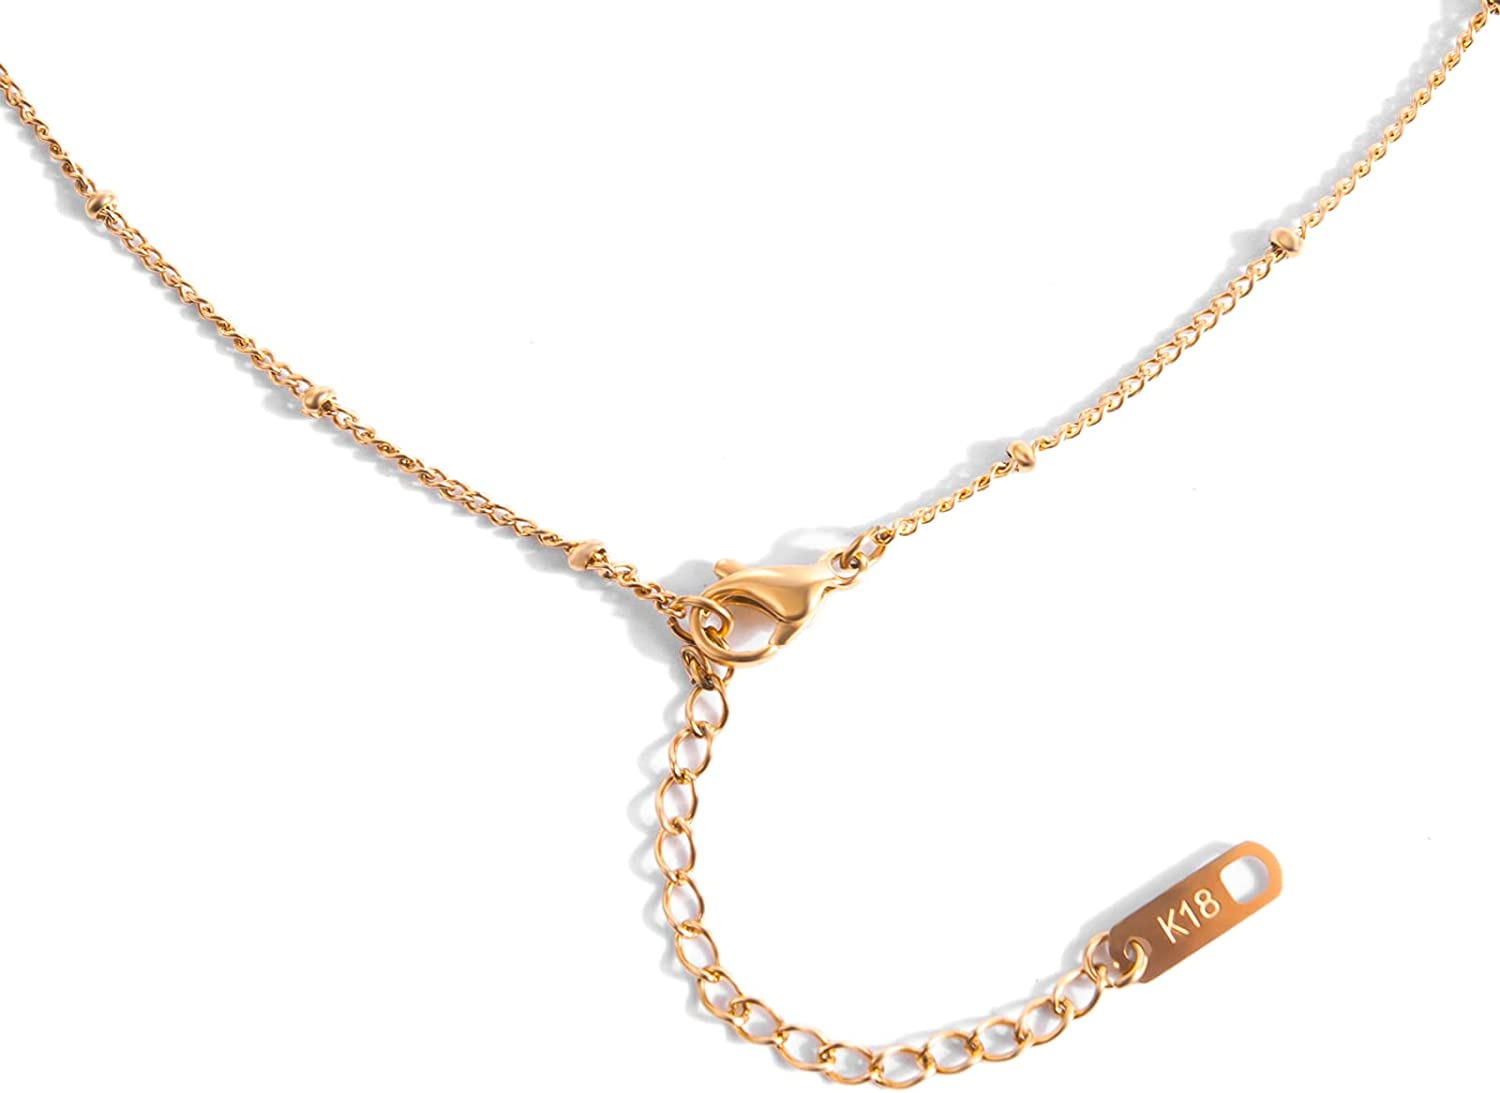 HIPBLING Cuban Link Chain Snake Choker Necklace 18K Real Gold Plated Herringbone Beaded Chain for Girl Women Dainty Jewelry Gift